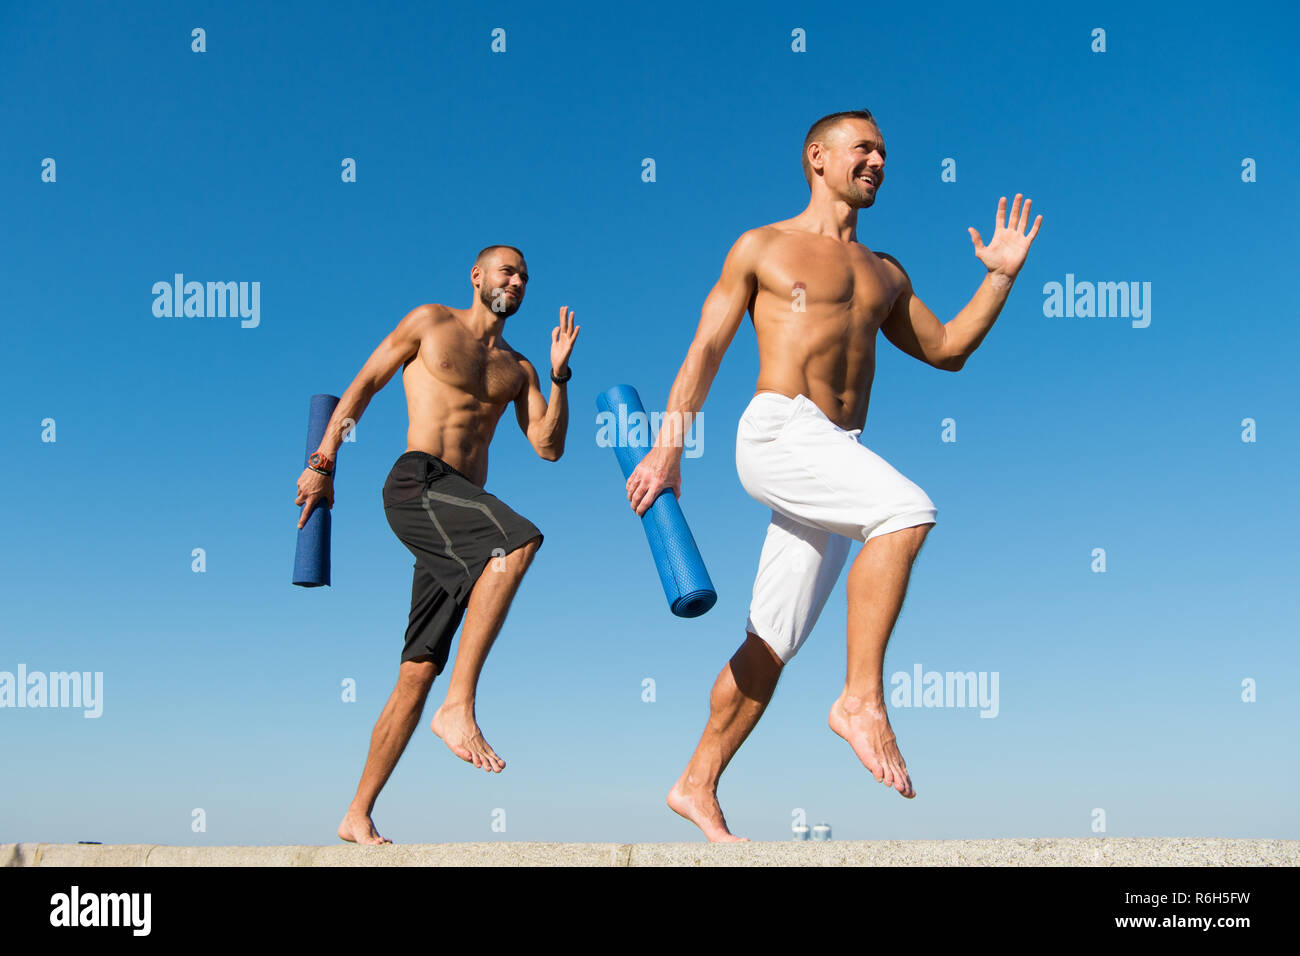 Forward to healthy lifestyle. Men with yoga mat captured in motion blue sky background. Sportsman with mat running. Run training outdoor. Runners hurry to stretch muscles after training. Yoga classes. - Stock Image